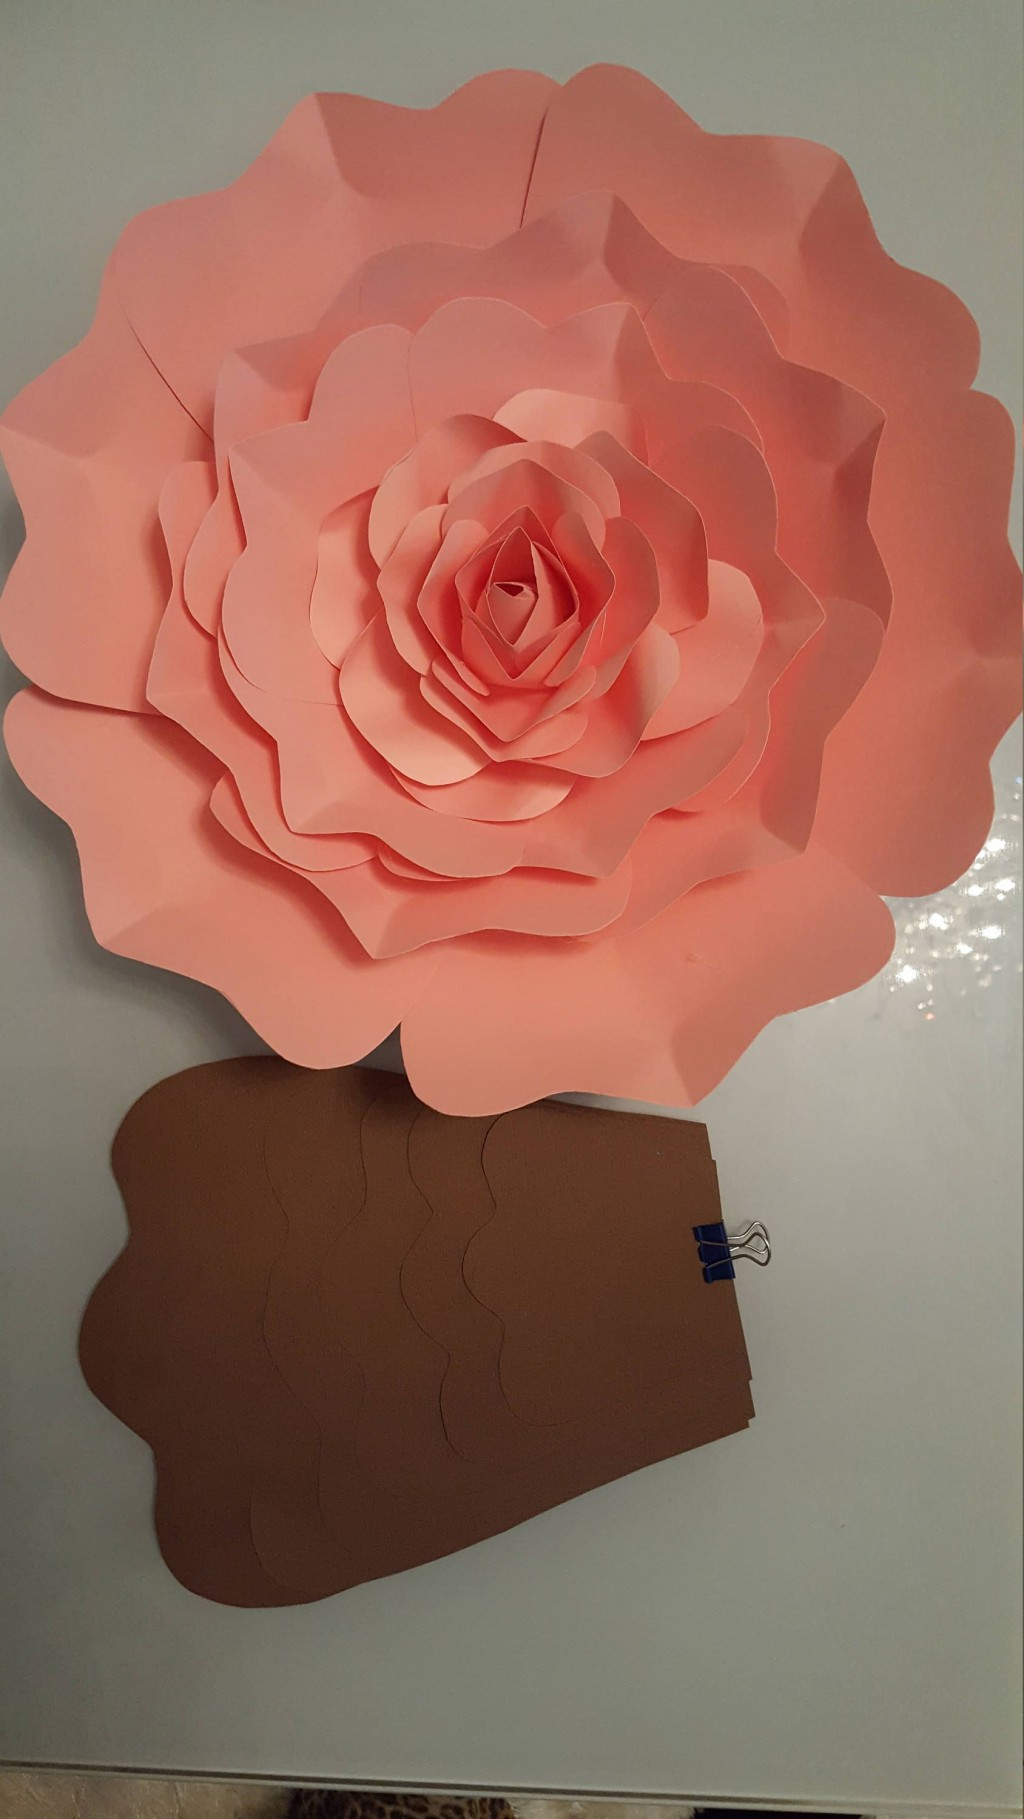 006 Top Paper Rose Template Pdf Design  Flower Giant Free CrepeLarge